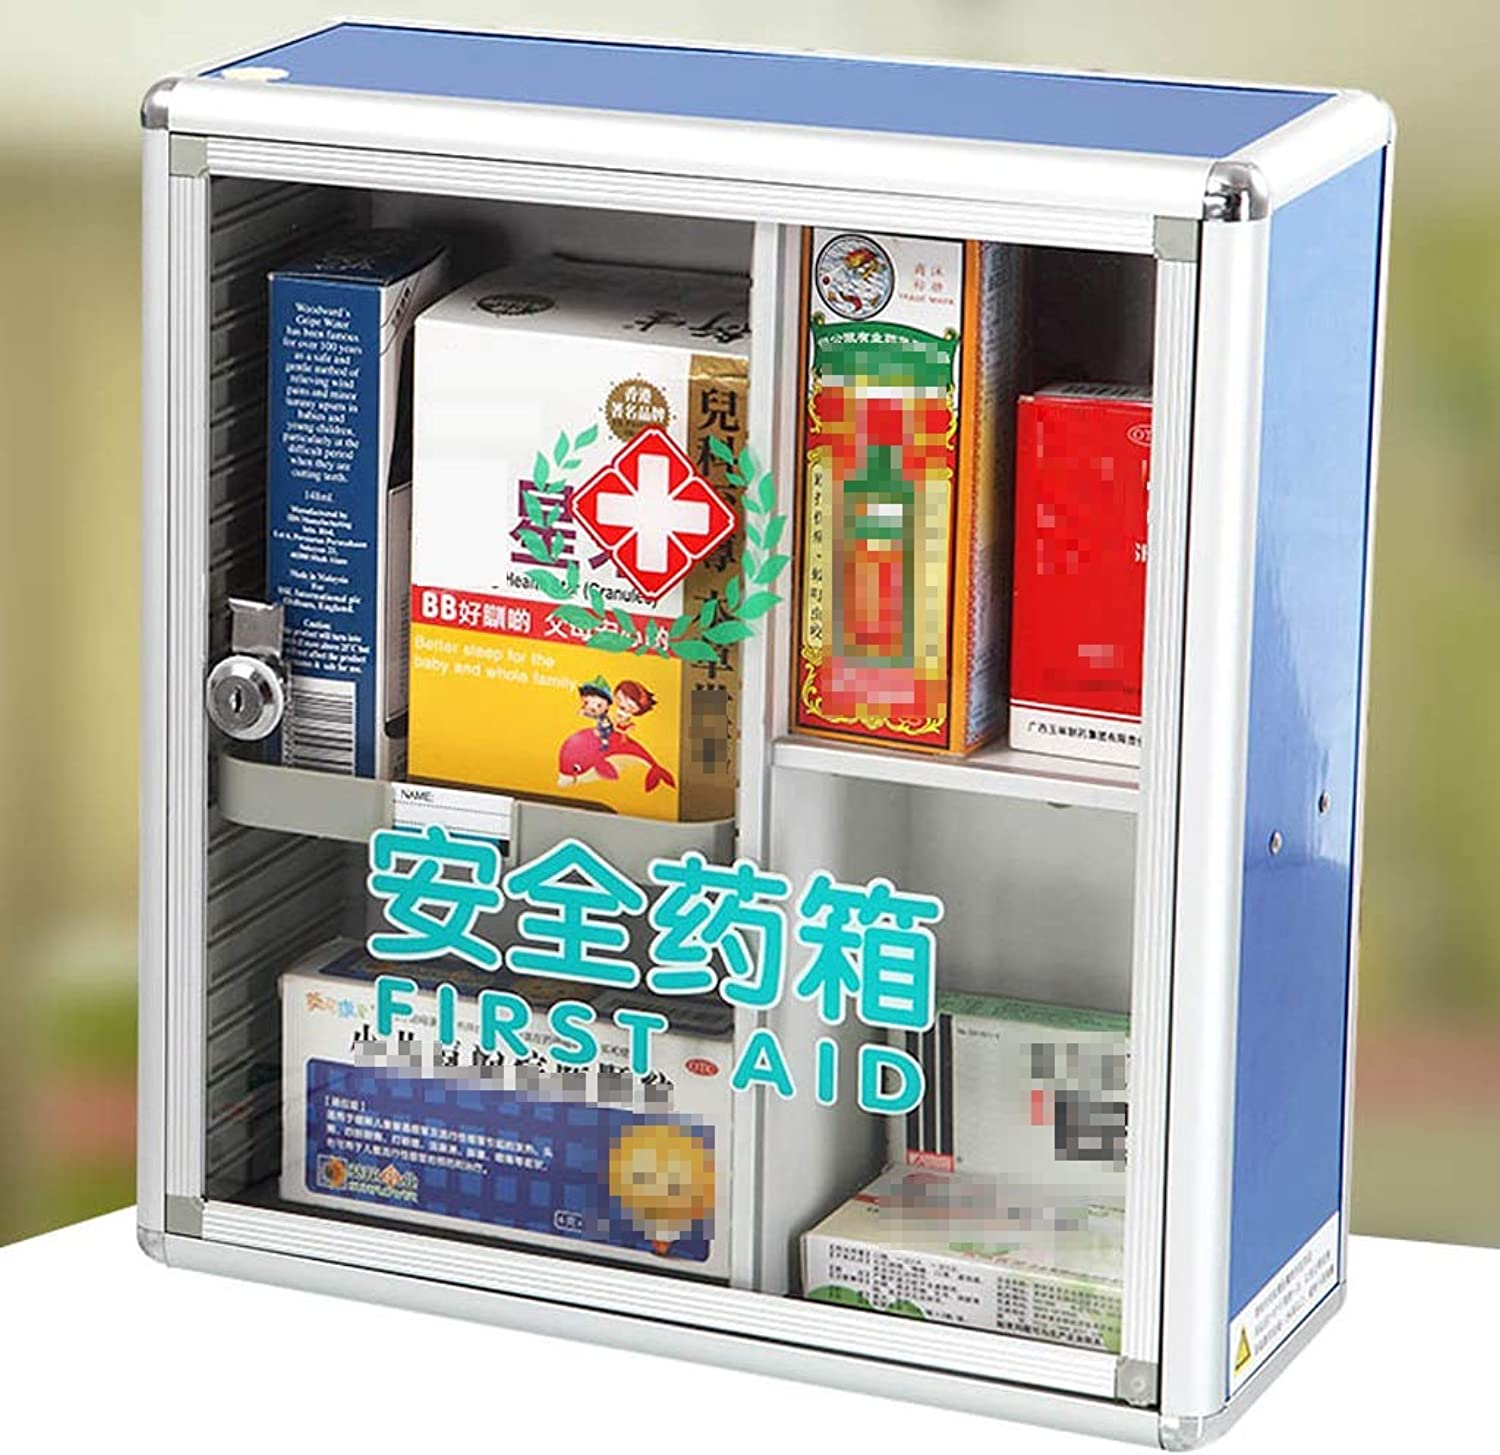 Djyyh Wall Mounted Medical Cabinet First Aid Kit, with 2 Shelves + Security Glass Door Lockable (color   bluee)